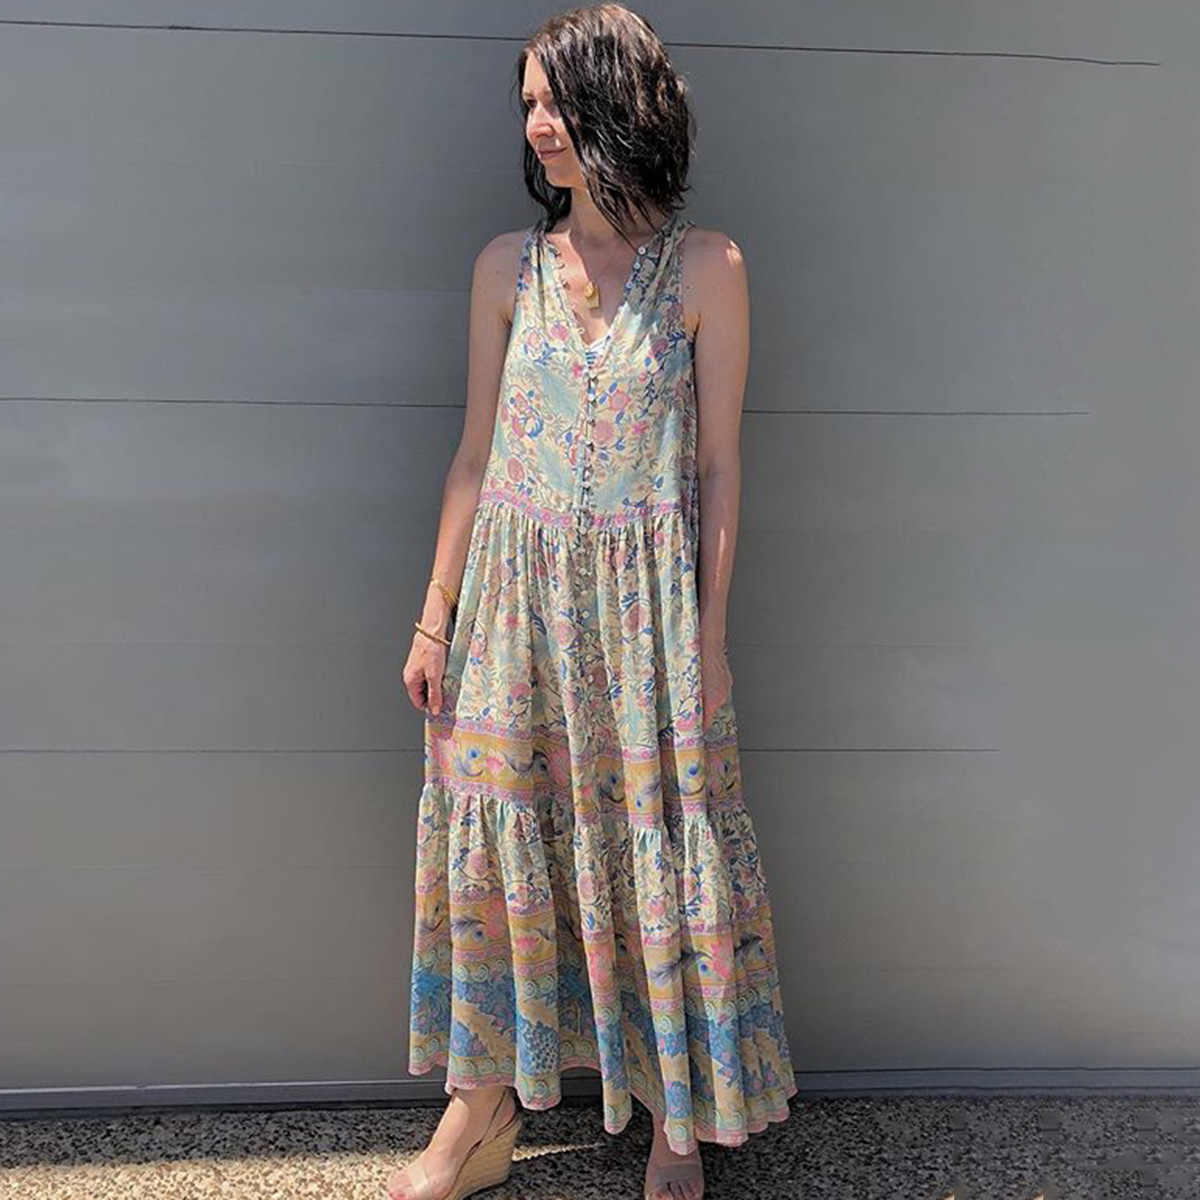 567dbff623bc Jastie Oasis Maxi Dress Gypsy Print Maxi Dresses V-Neck Sleeveless Vest  Beach Long Dress